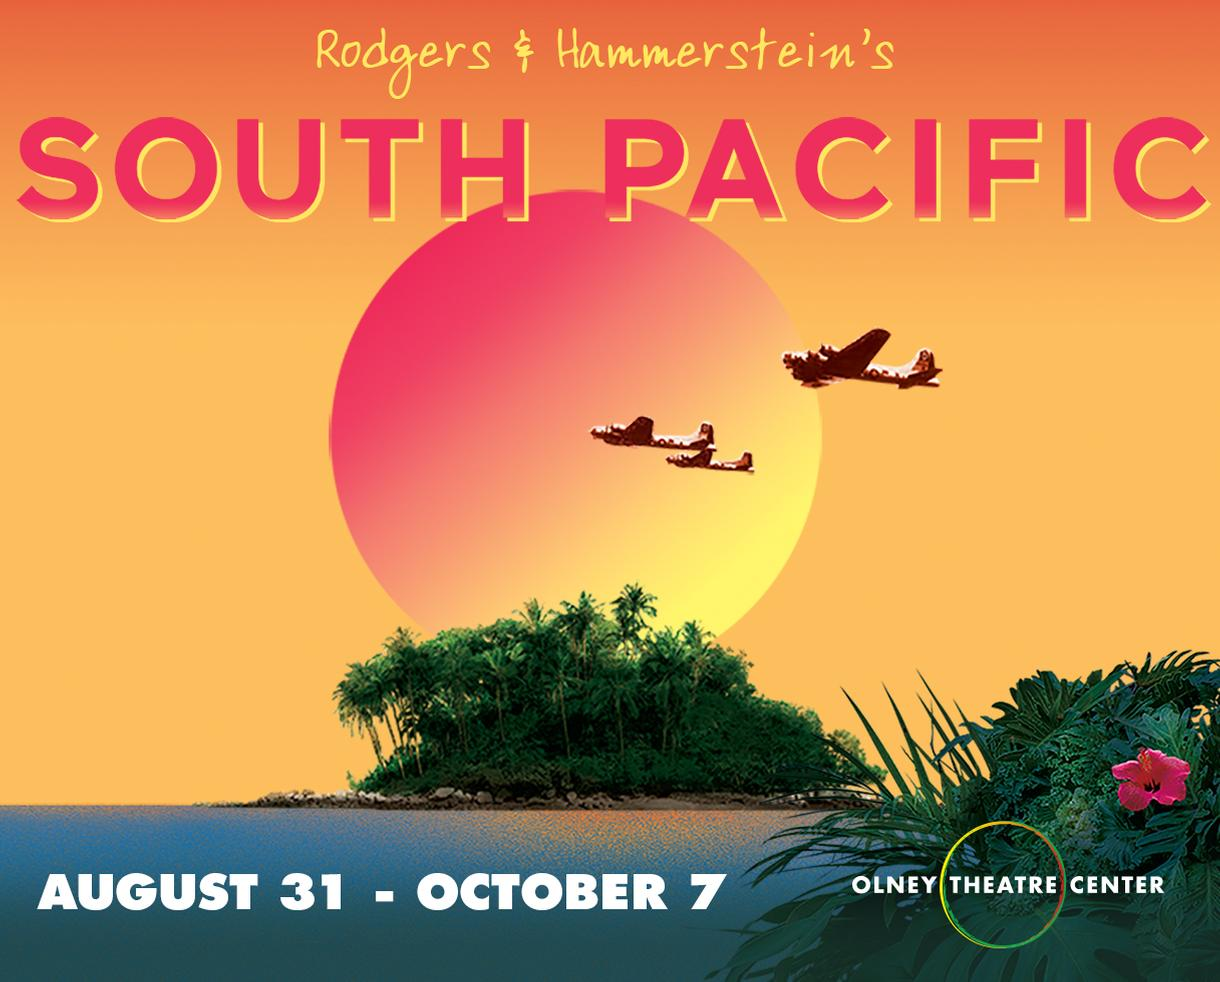 South Pacific at Olney Theatre Center